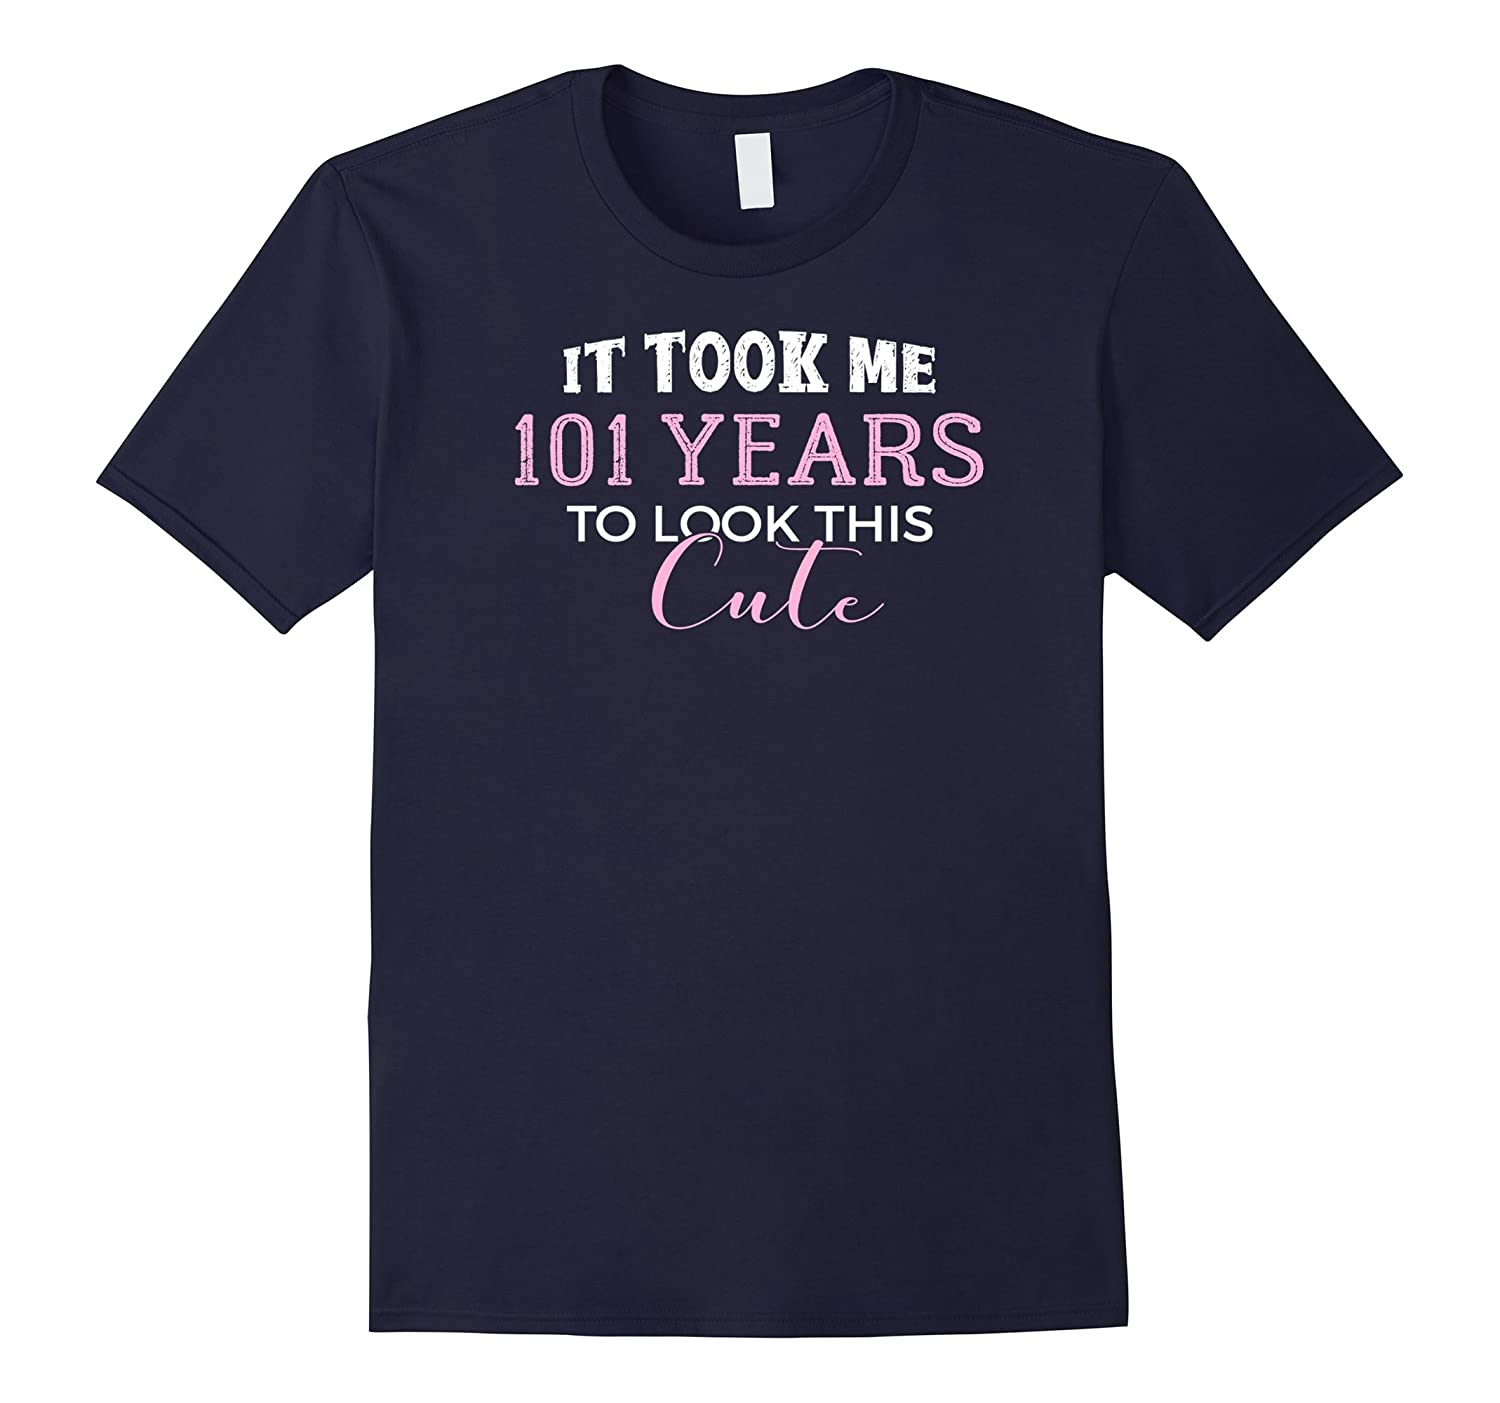 Cute 101 Years Old Brithday Shirt for Women-FL